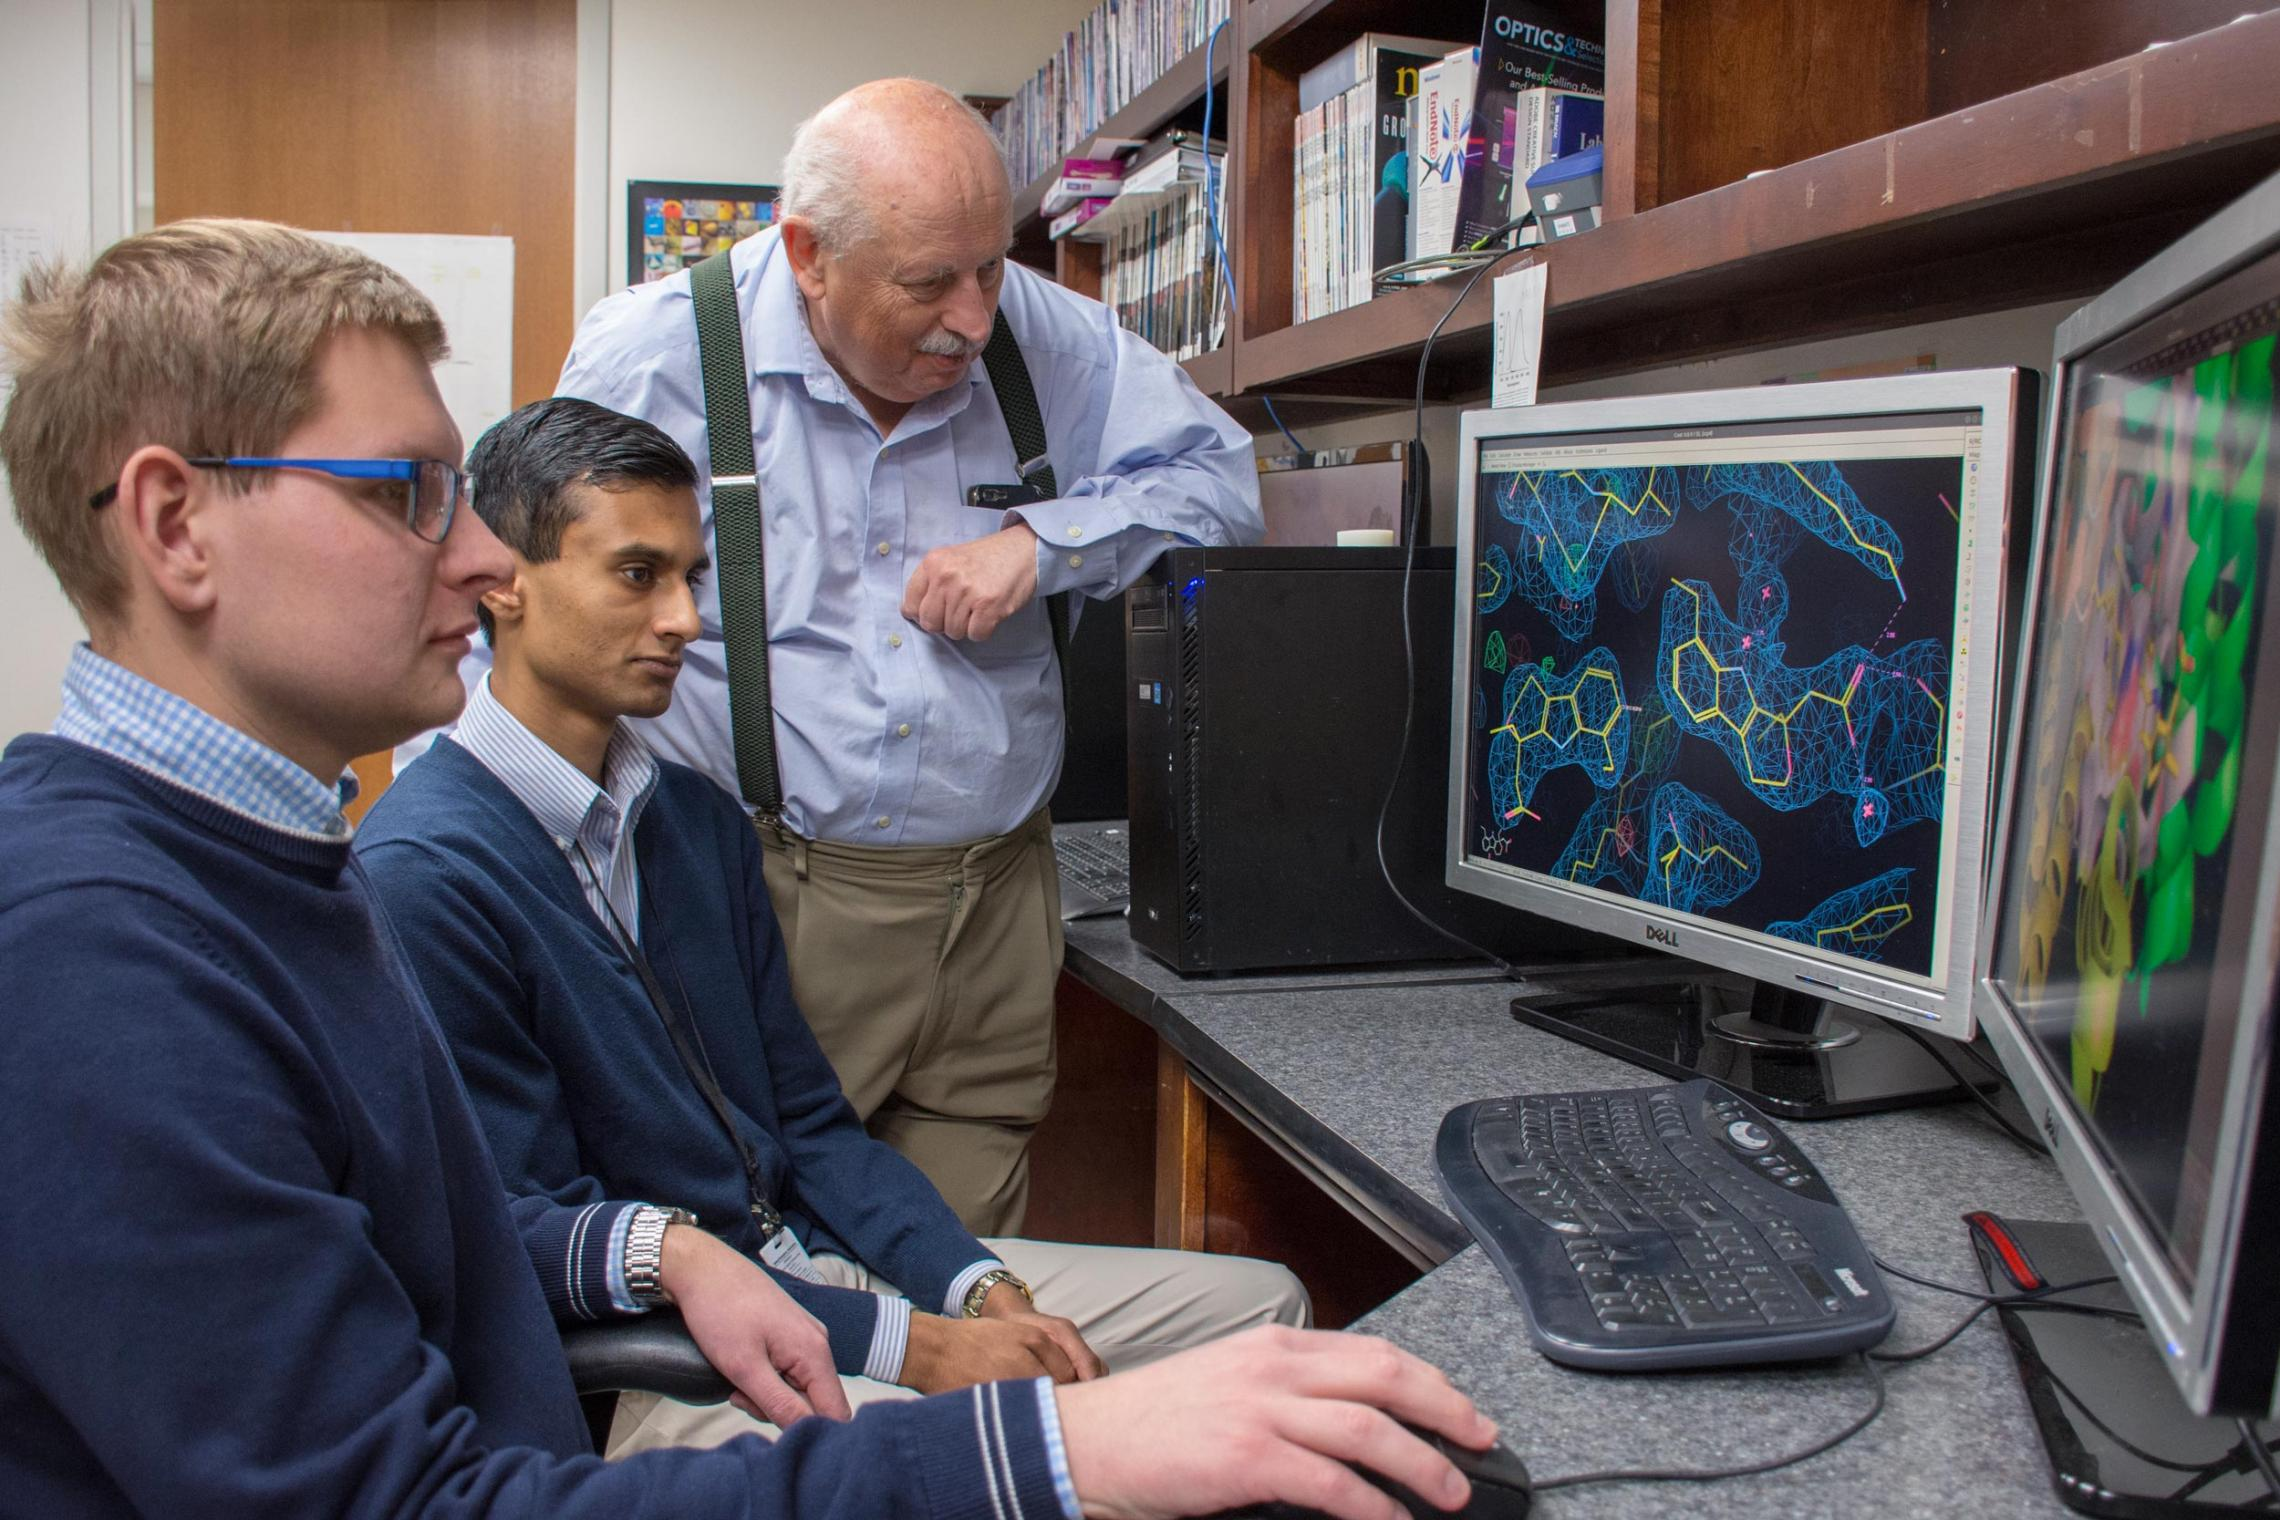 Graduate student Mateusz Czub, left, and undergraduate chemistry student Barat Venkataramany, center, analyze a testosterone binding site and discuss the possible medical implications of their finding with Wladek Minor.